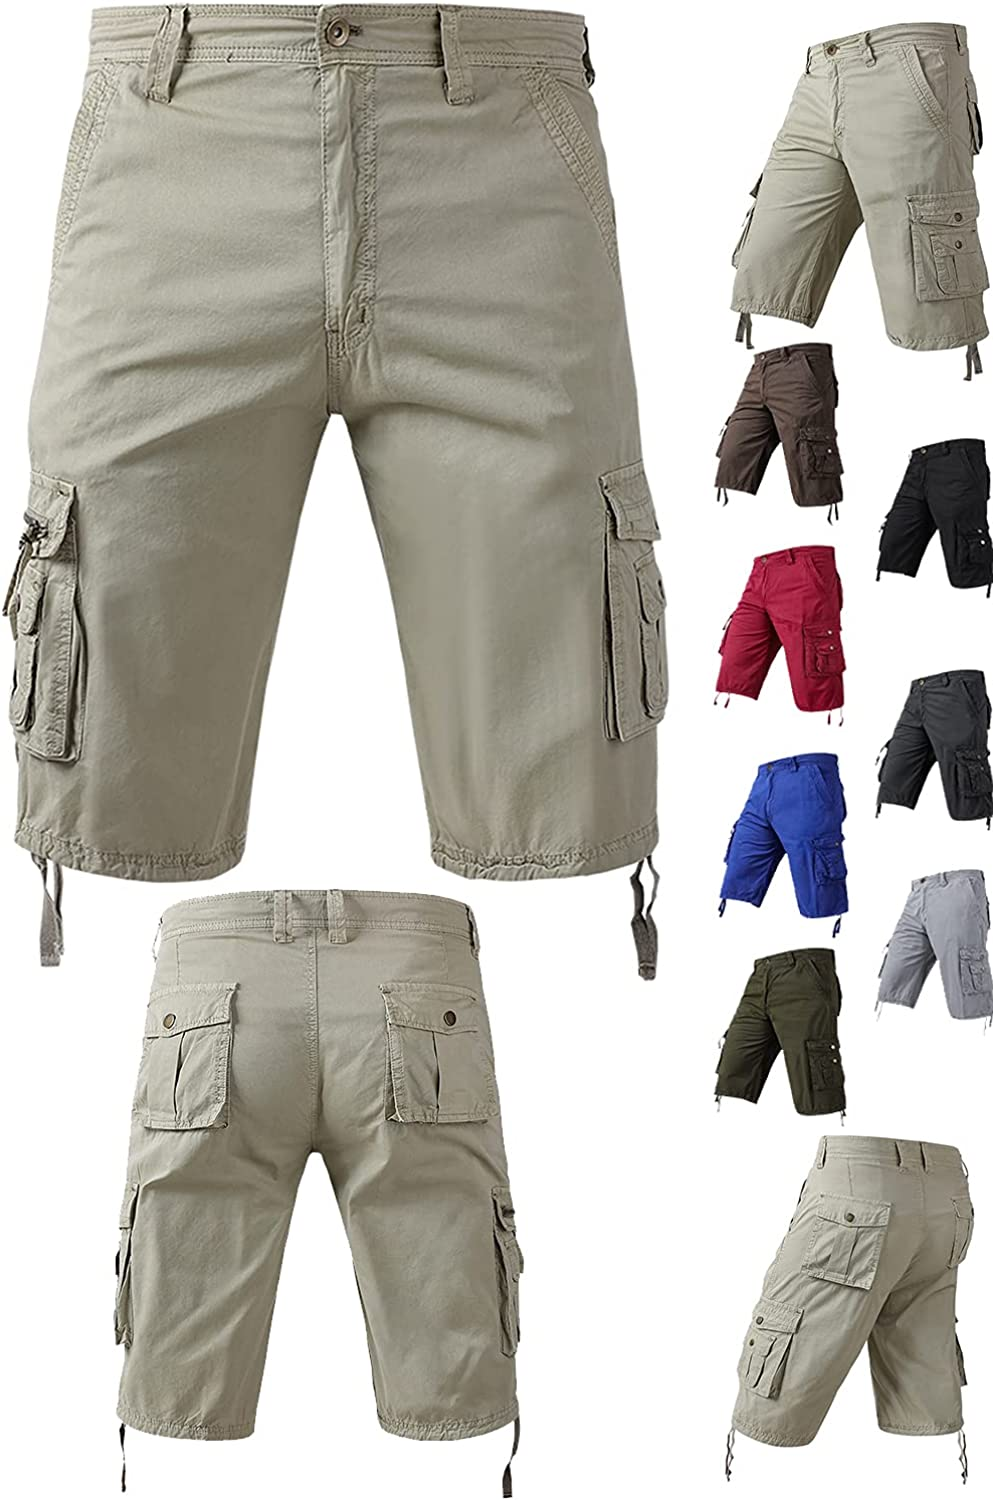 Osmyzcp Mens Camo Multi Pockets Shorts Relaxed Fit Camouflage Outdoor Cargo Shorts